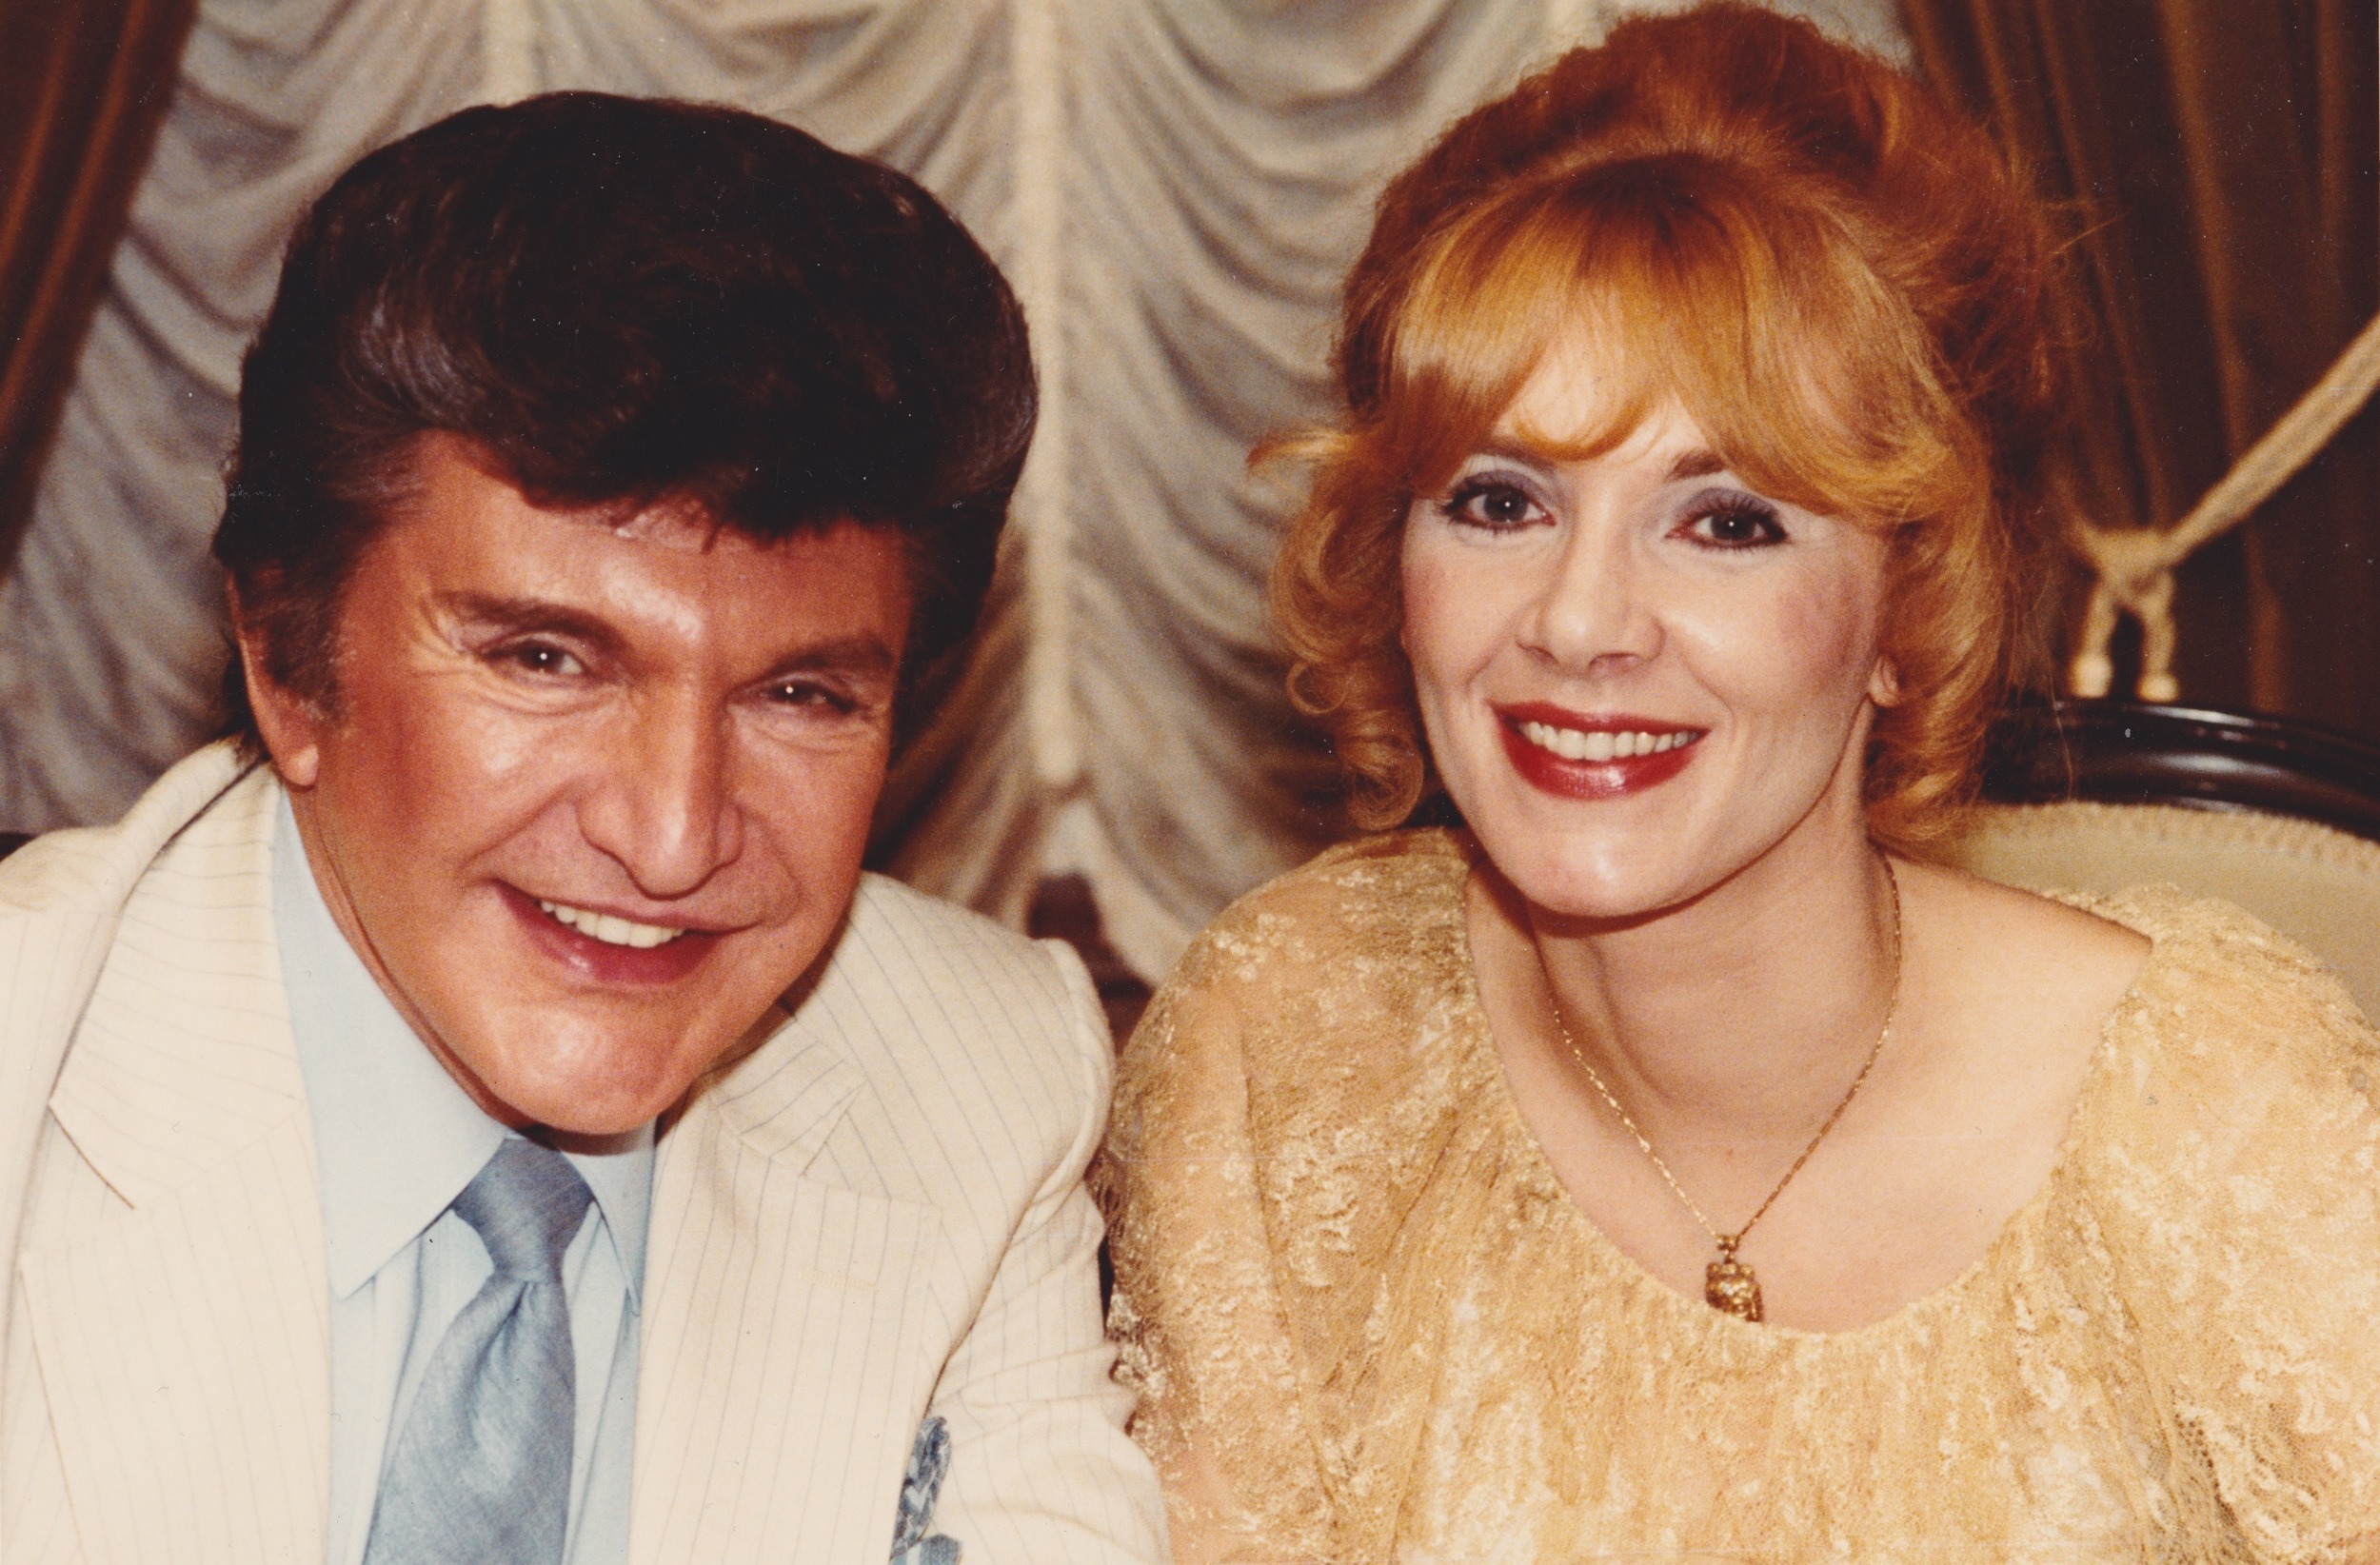 1977 with Liberace